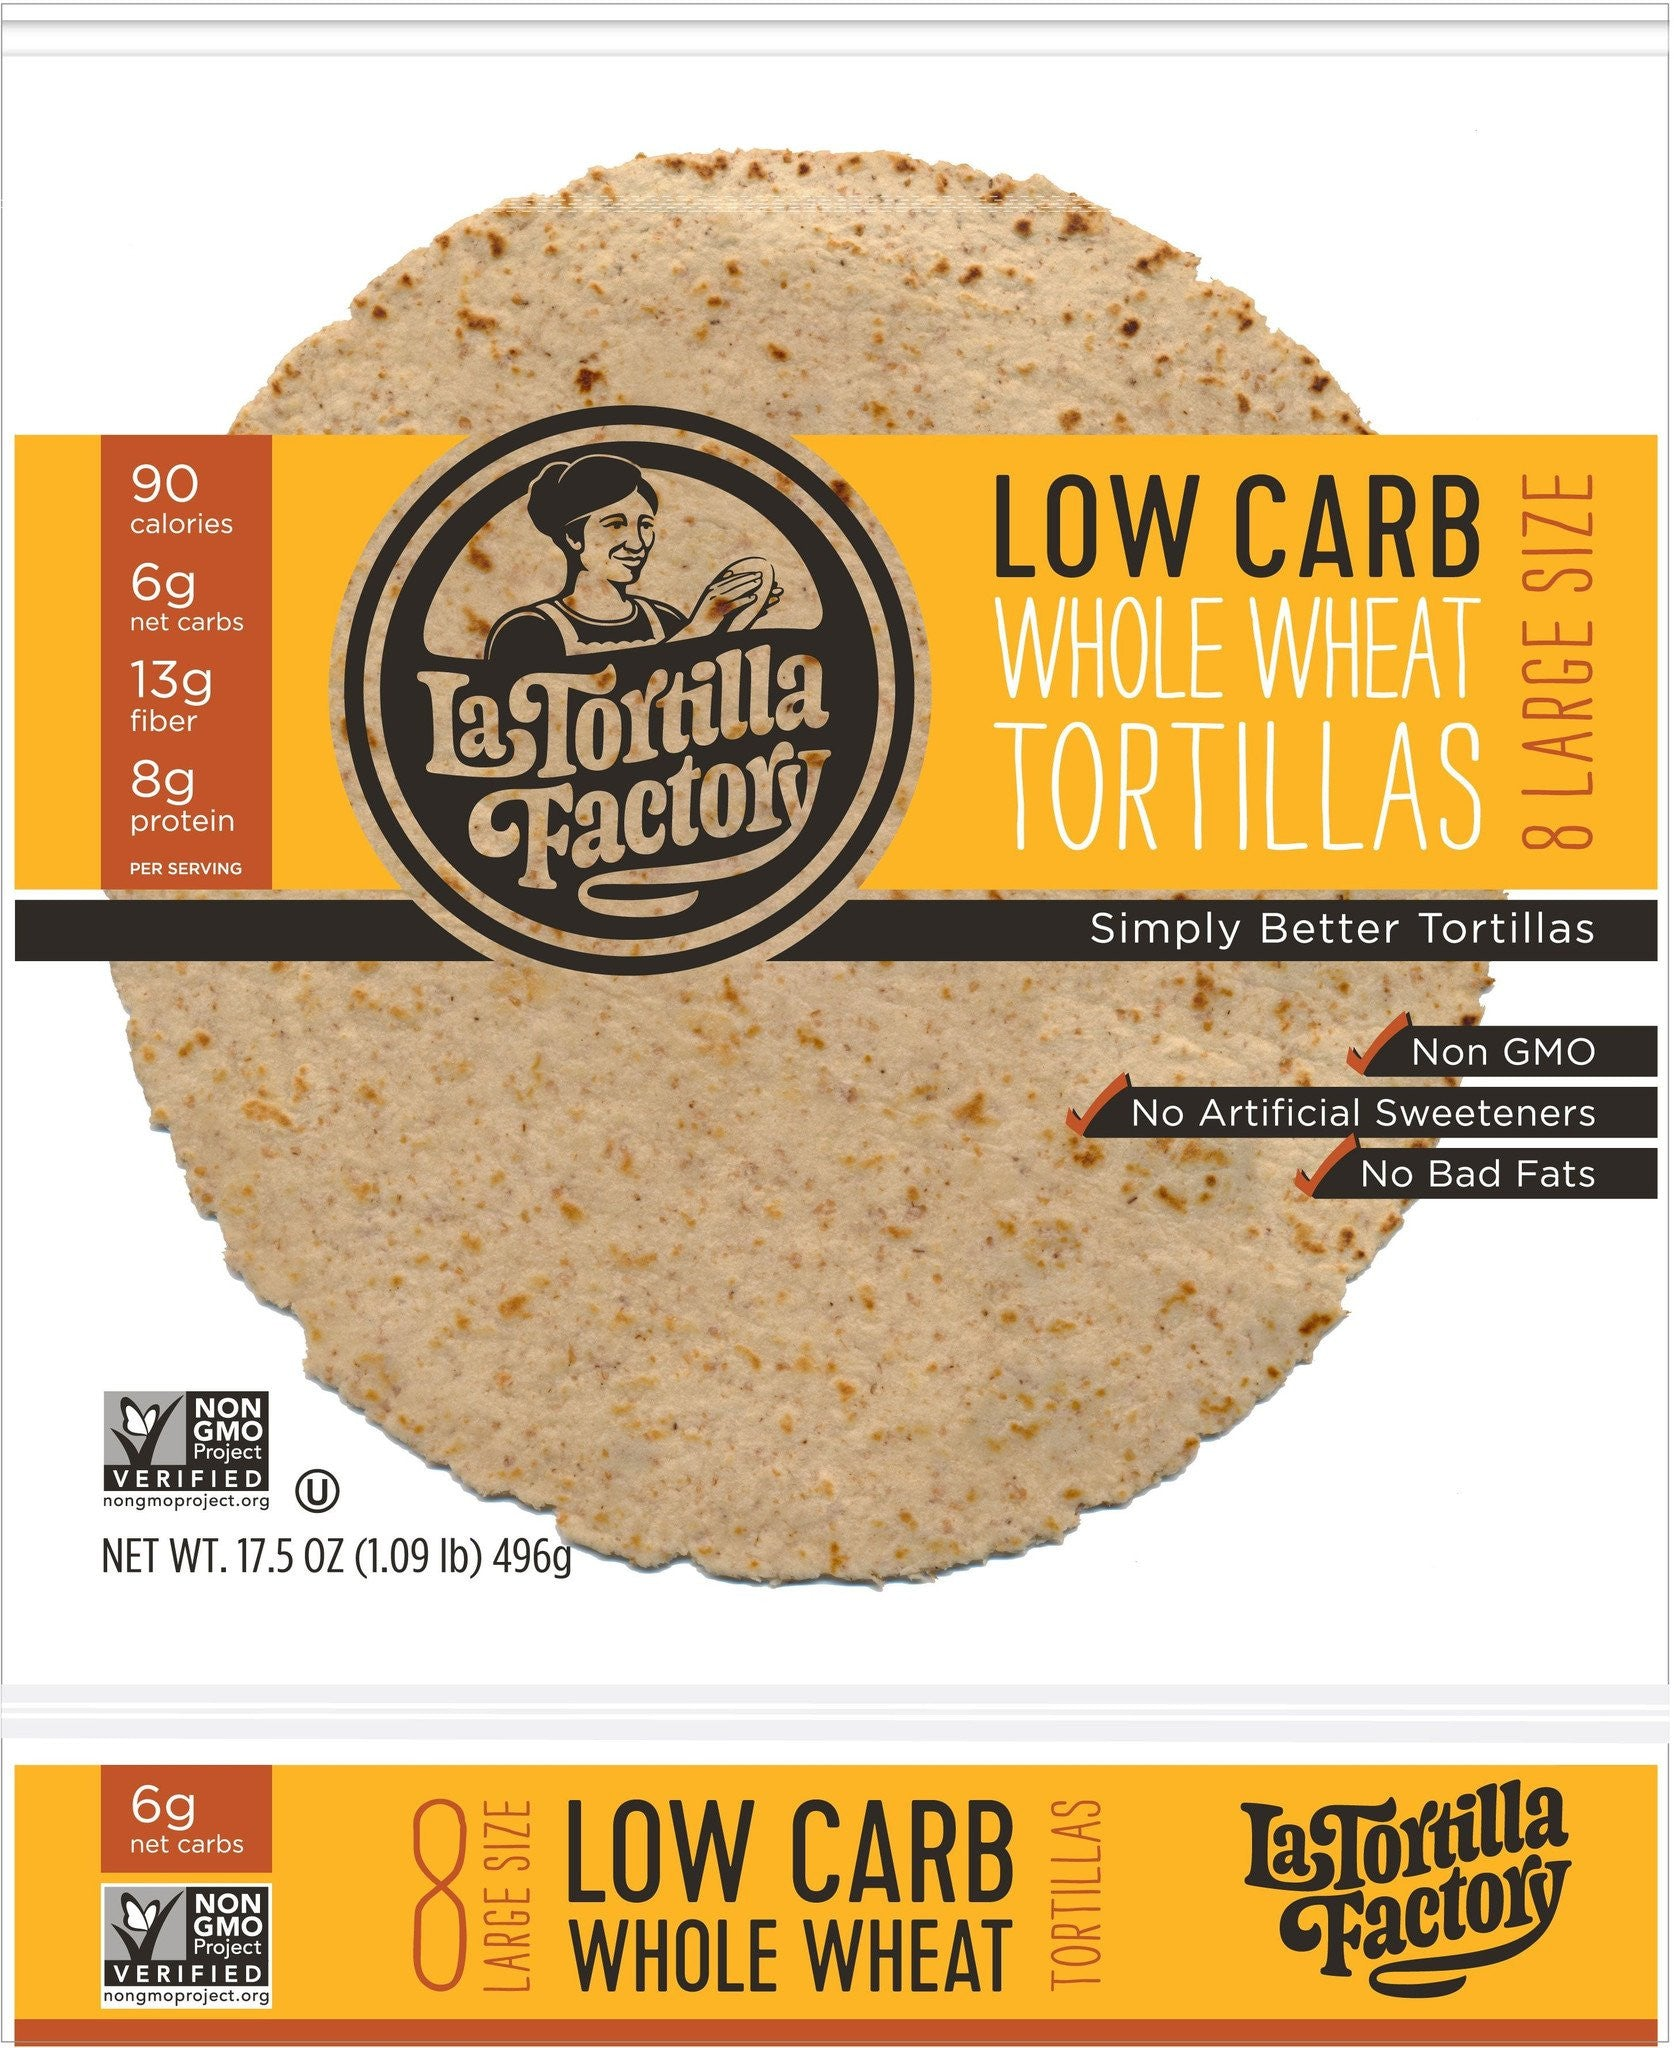 La Tortilla Factory Low Carb, High Fiber Tortillas, Made with Whole Wheat, Large Size, 8 Ea (Pack of 10)